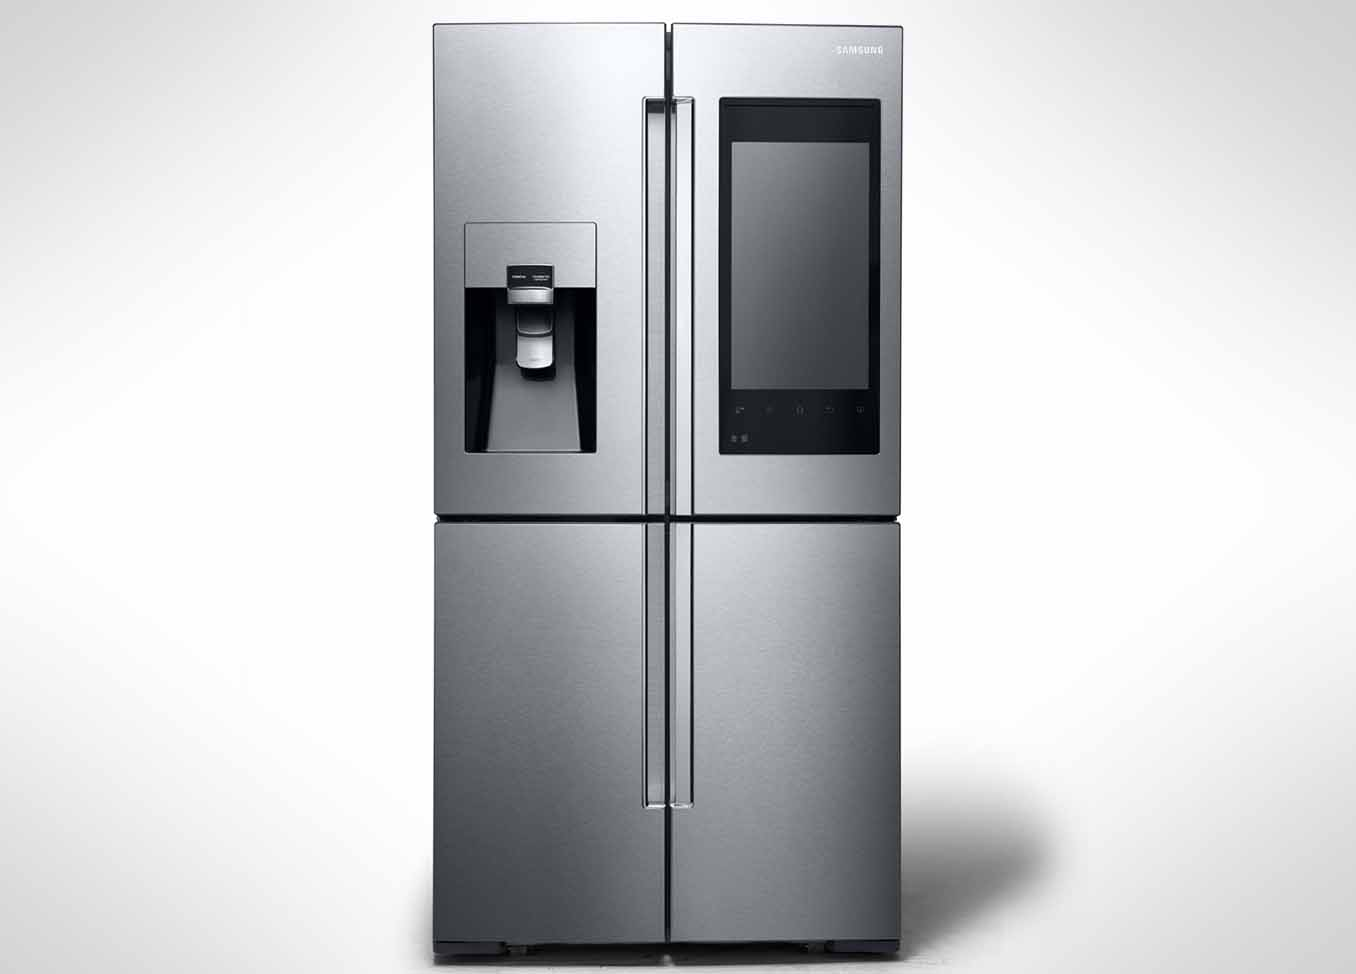 Samsung 39 S Family Hub Refrigerator Is It The Future Of